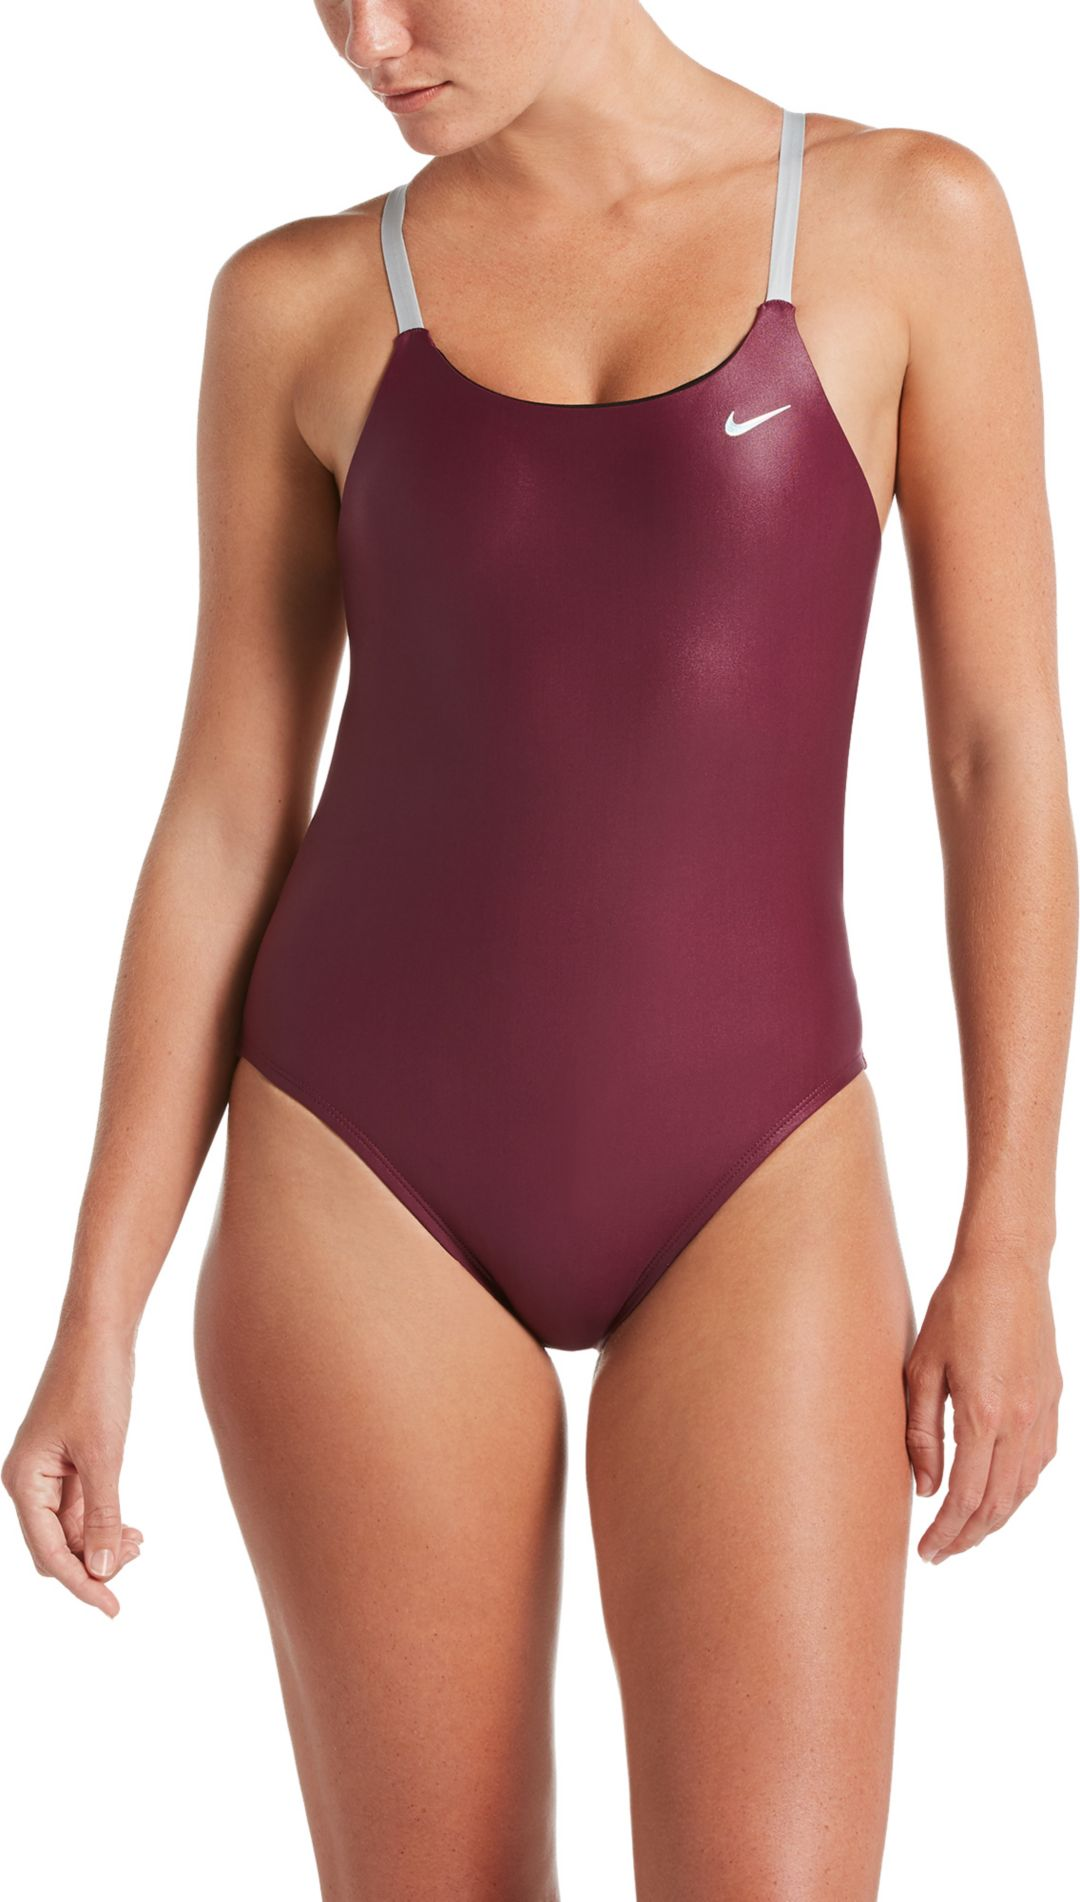 2b6f8102d2a9 Nike Women's Flash Bonded Cut-Out One Piece Swimsuit. noImageFound.  Previous. 1